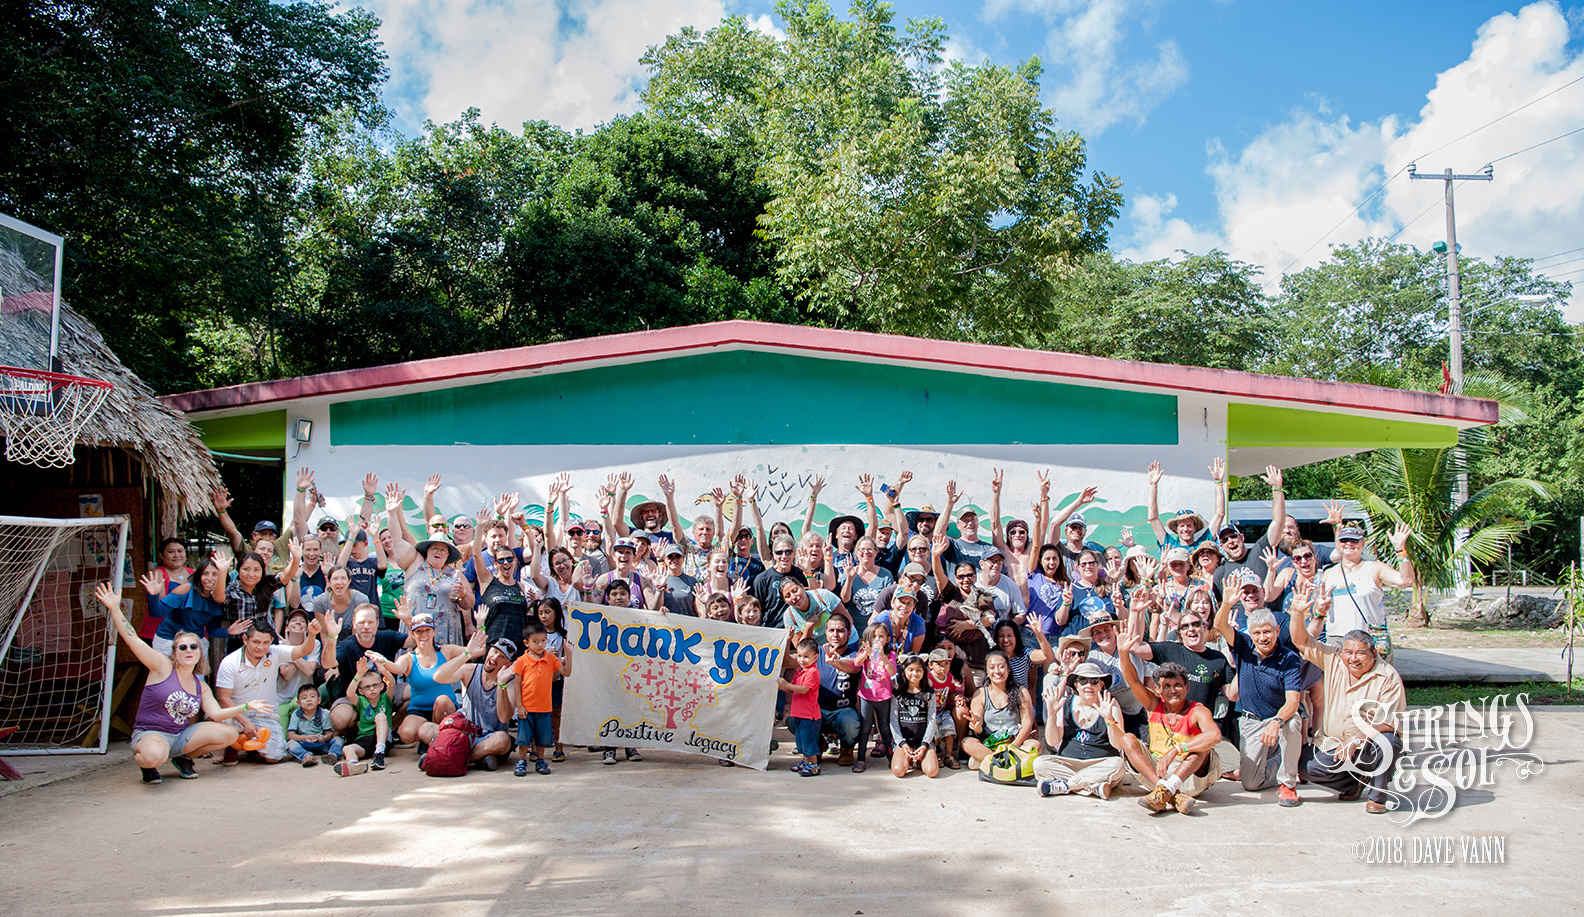 Strings & Sol 2019 Community Engagement & High School Landscaping Experience image